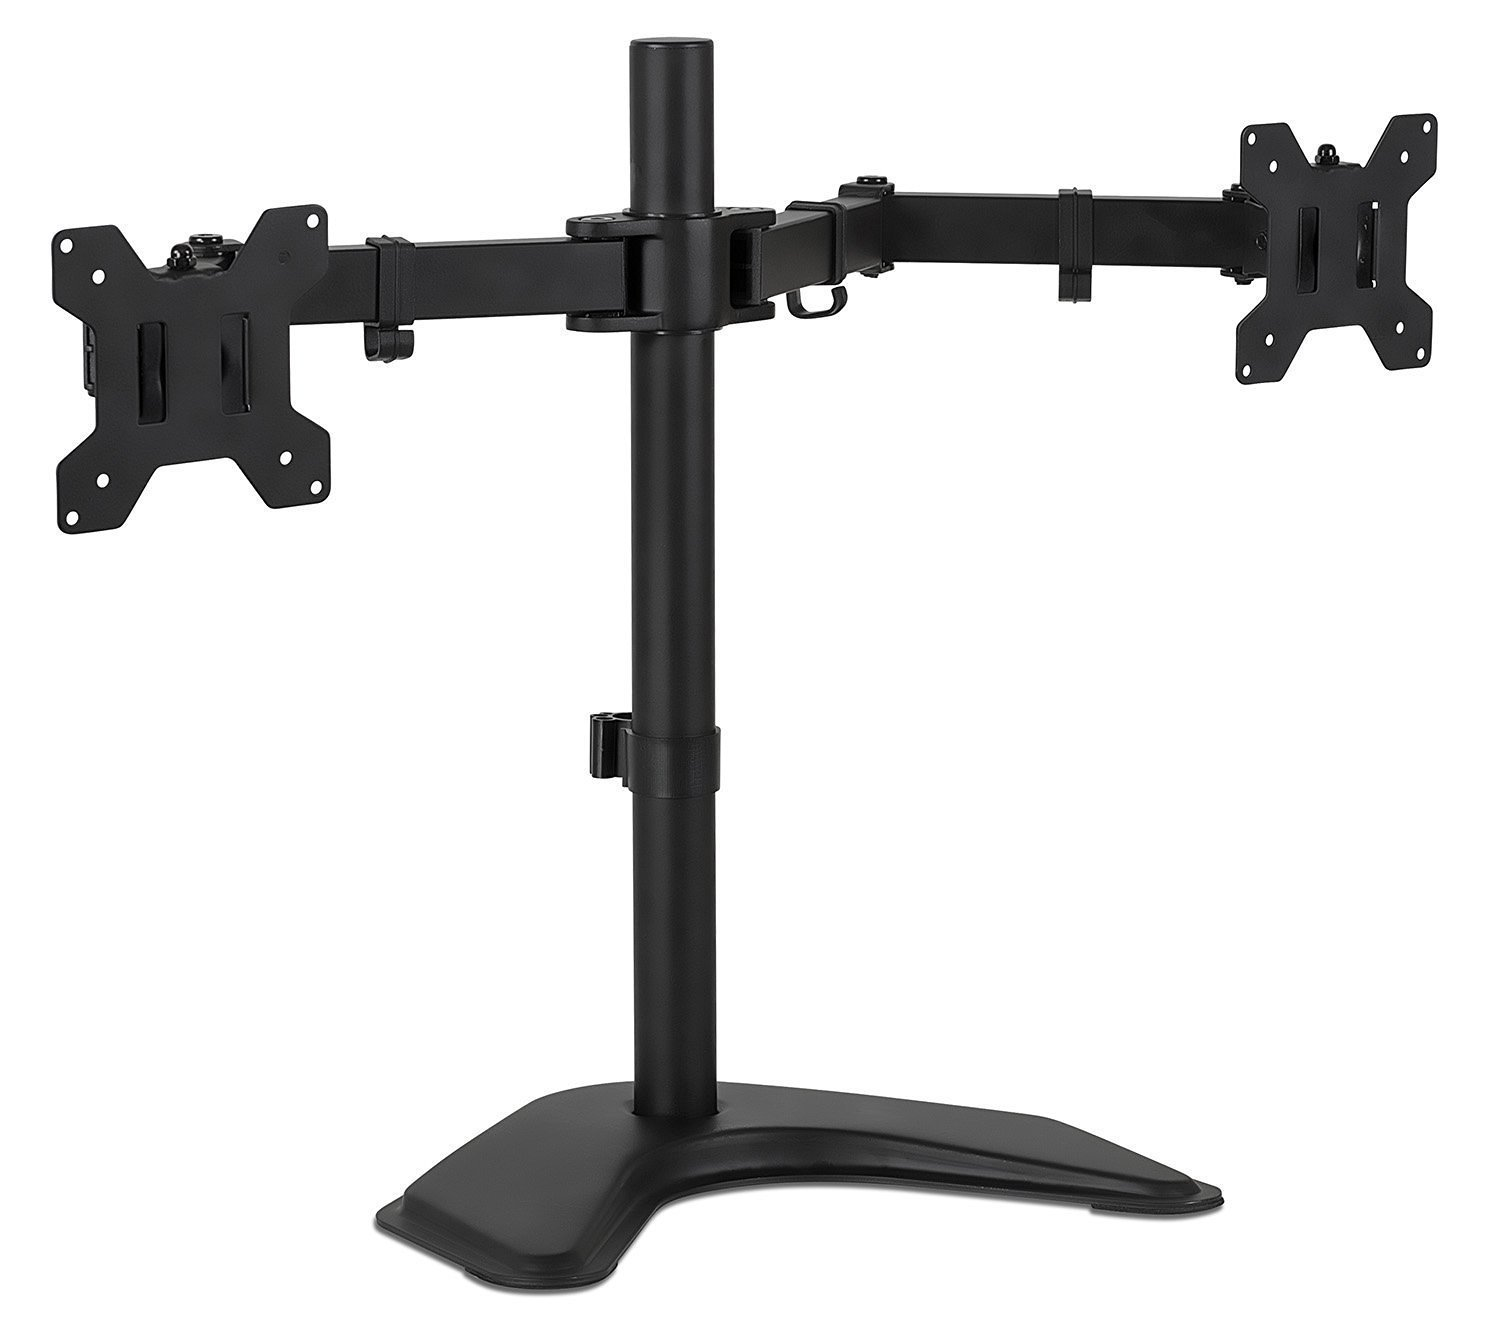 Mount-It! Dual Monitor Stand | Double Monitor Desk Stand Fits Two x 19 20 21 22 23 24 Inch Computer Screens | Freestanding and Grommet Base | 2 Heavy Duty Full Motion Adjustable Arms | VESA Compatible by Mount-It!